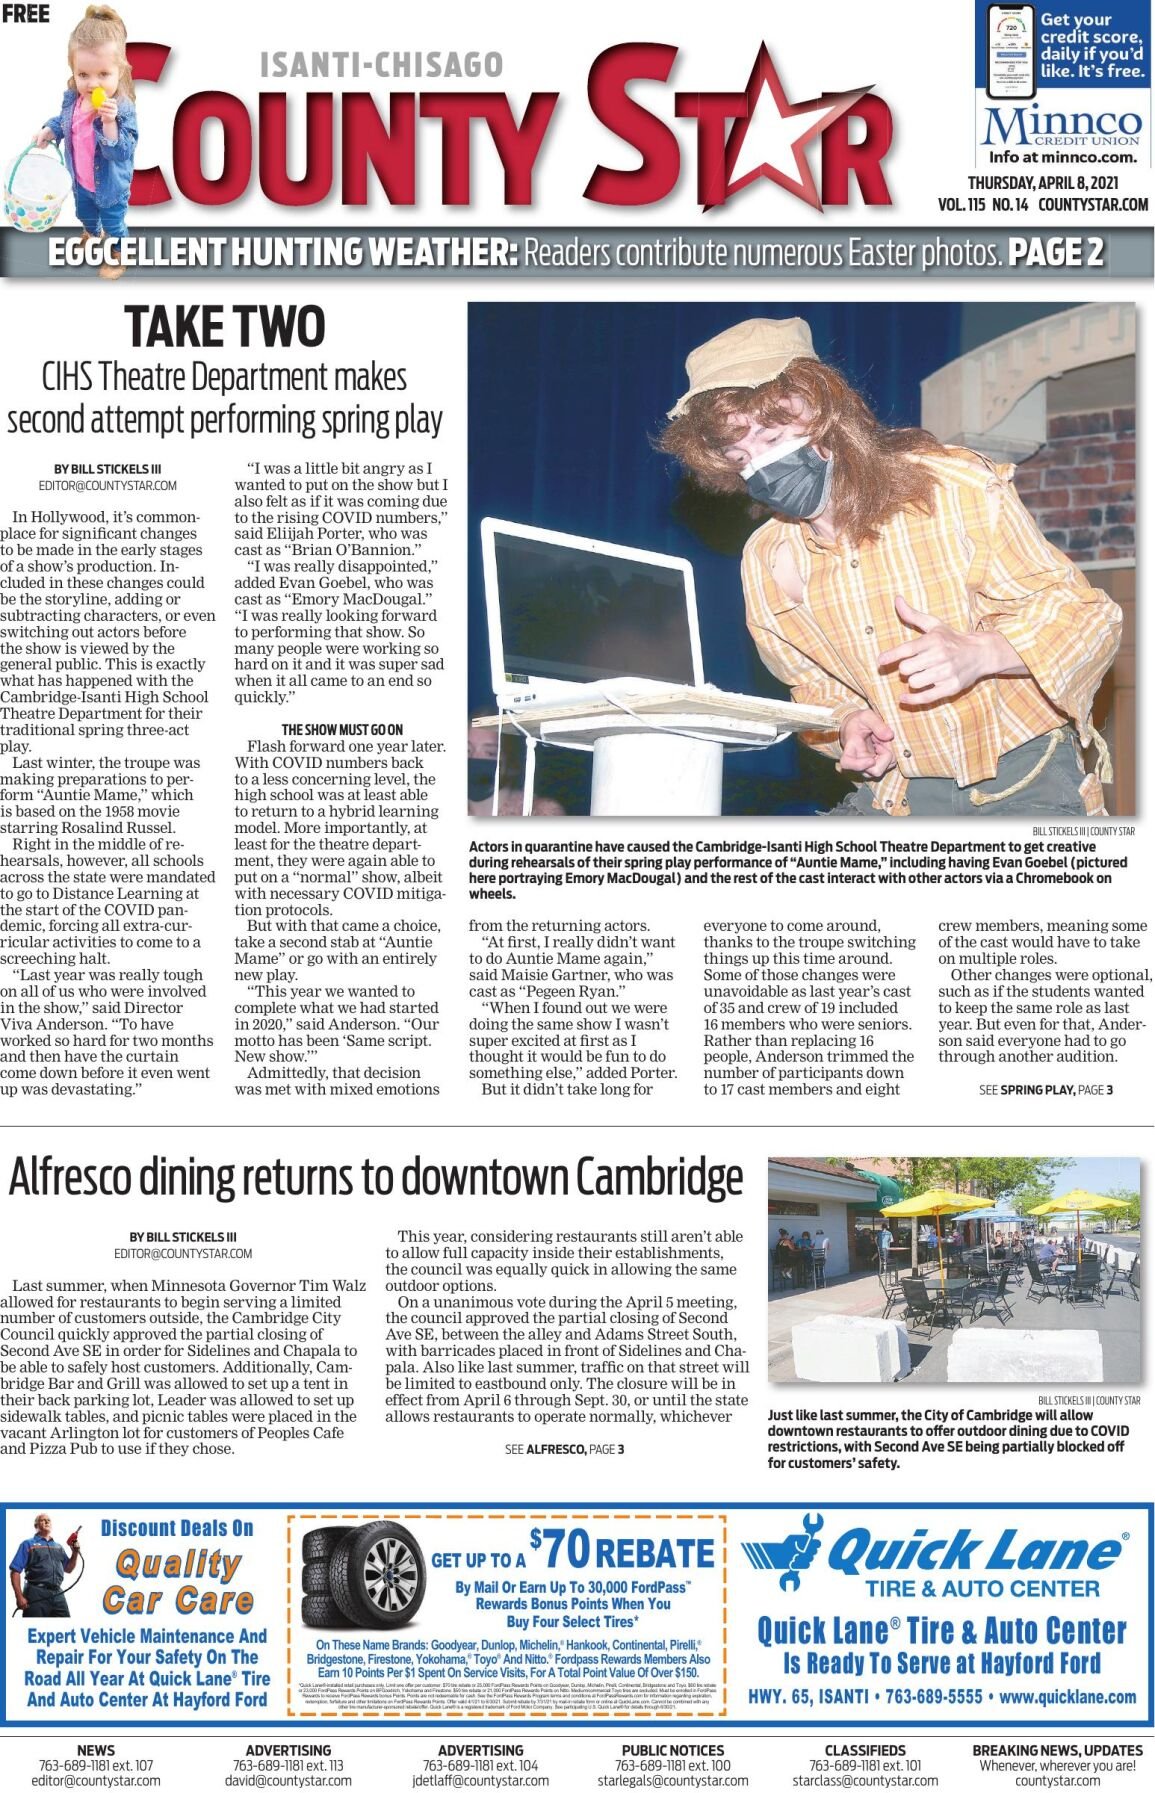 Isanti-Chisago County Star April 8, 2021 e-edition